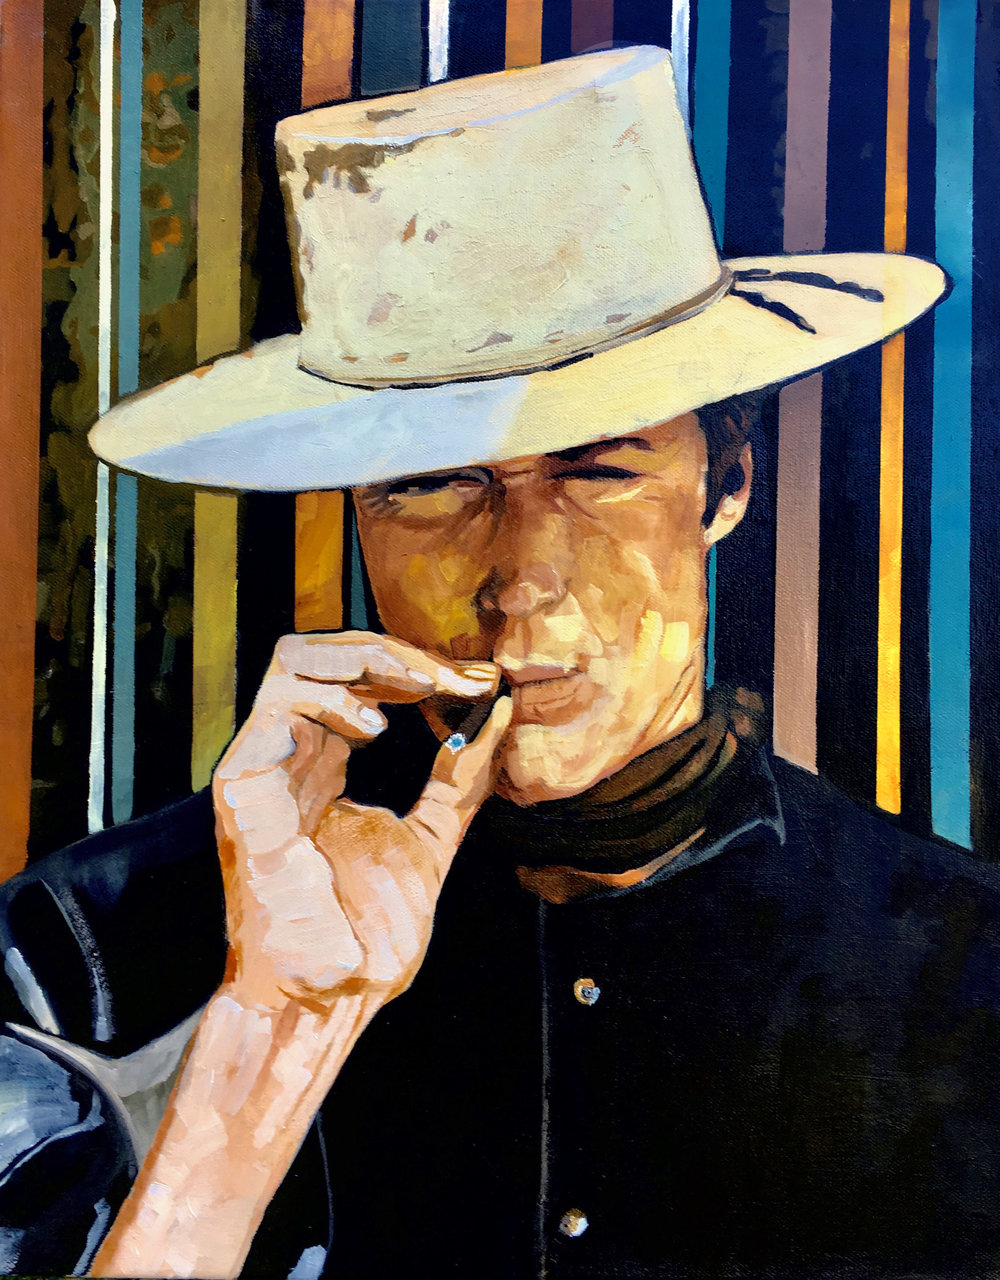 I   conic spaghetti western imagery - Clint Eastwood in Hang em High.